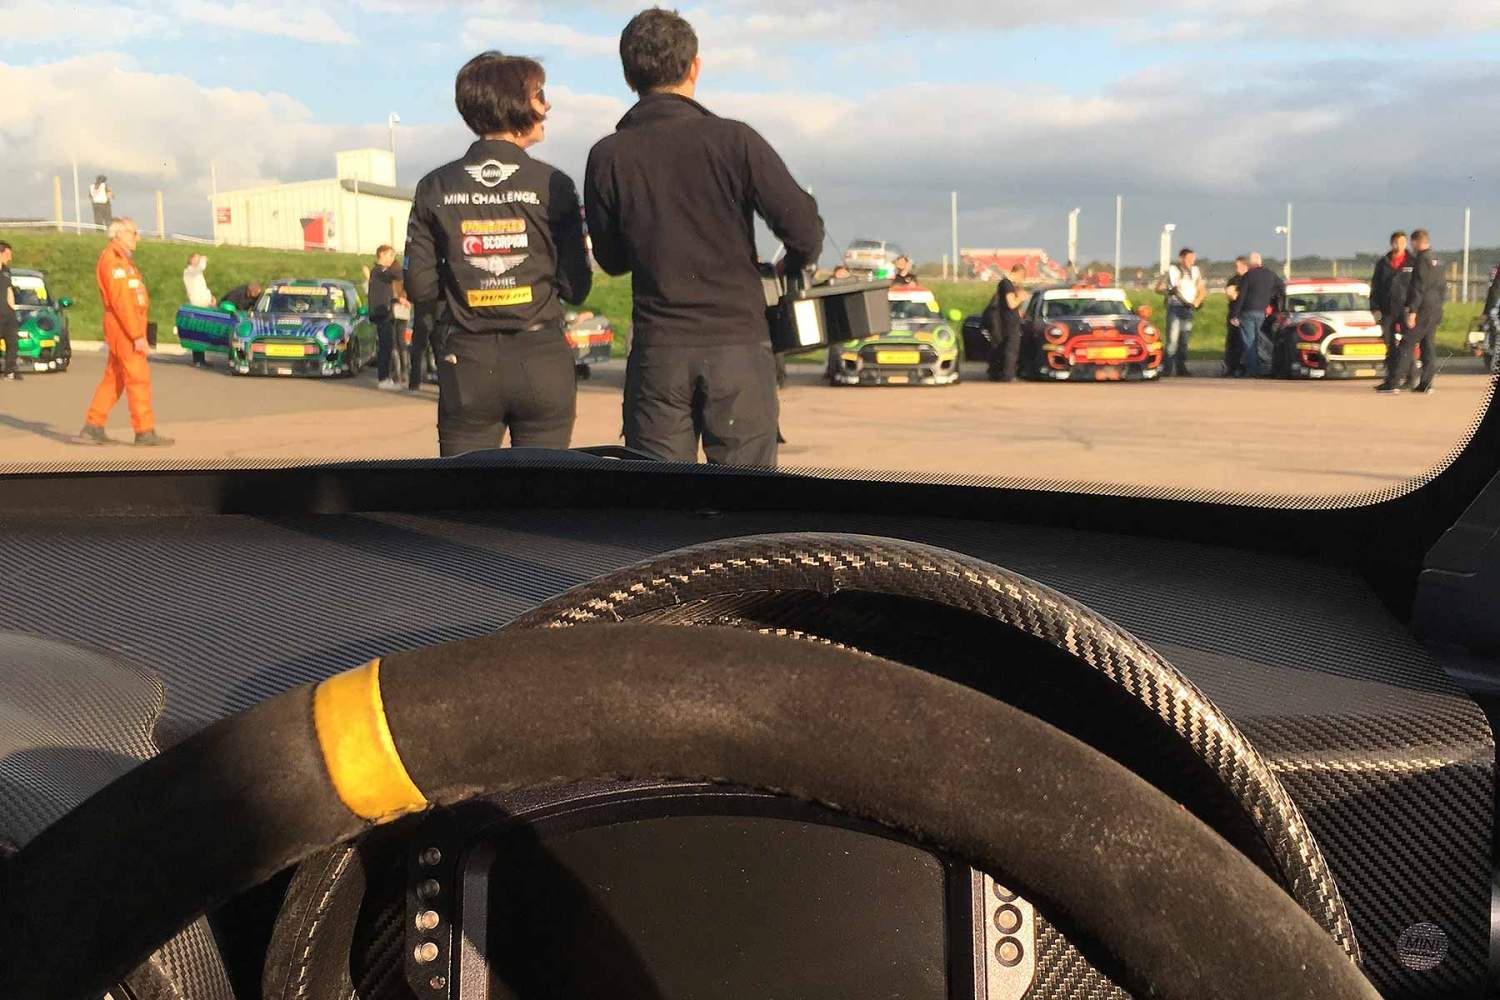 Motoring Research races a MINI Challenge racer